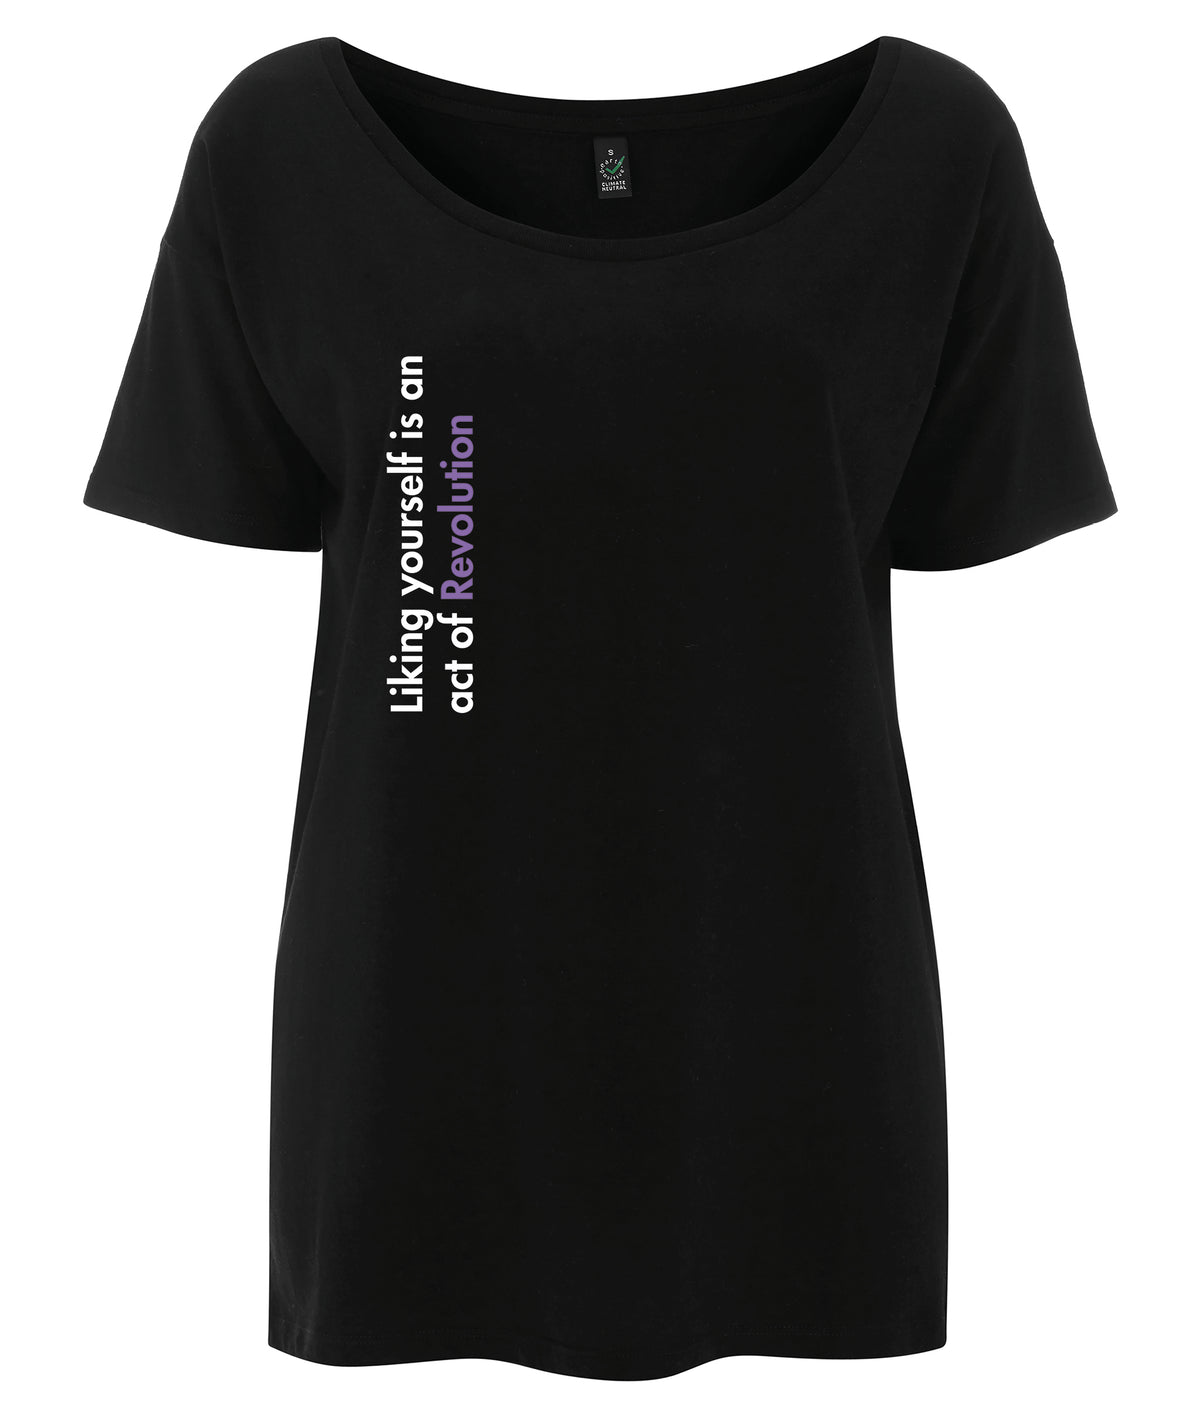 Liking Yourself Is An Act Of Revolution Tencel Blend Oversized Feminist T Shirt Black